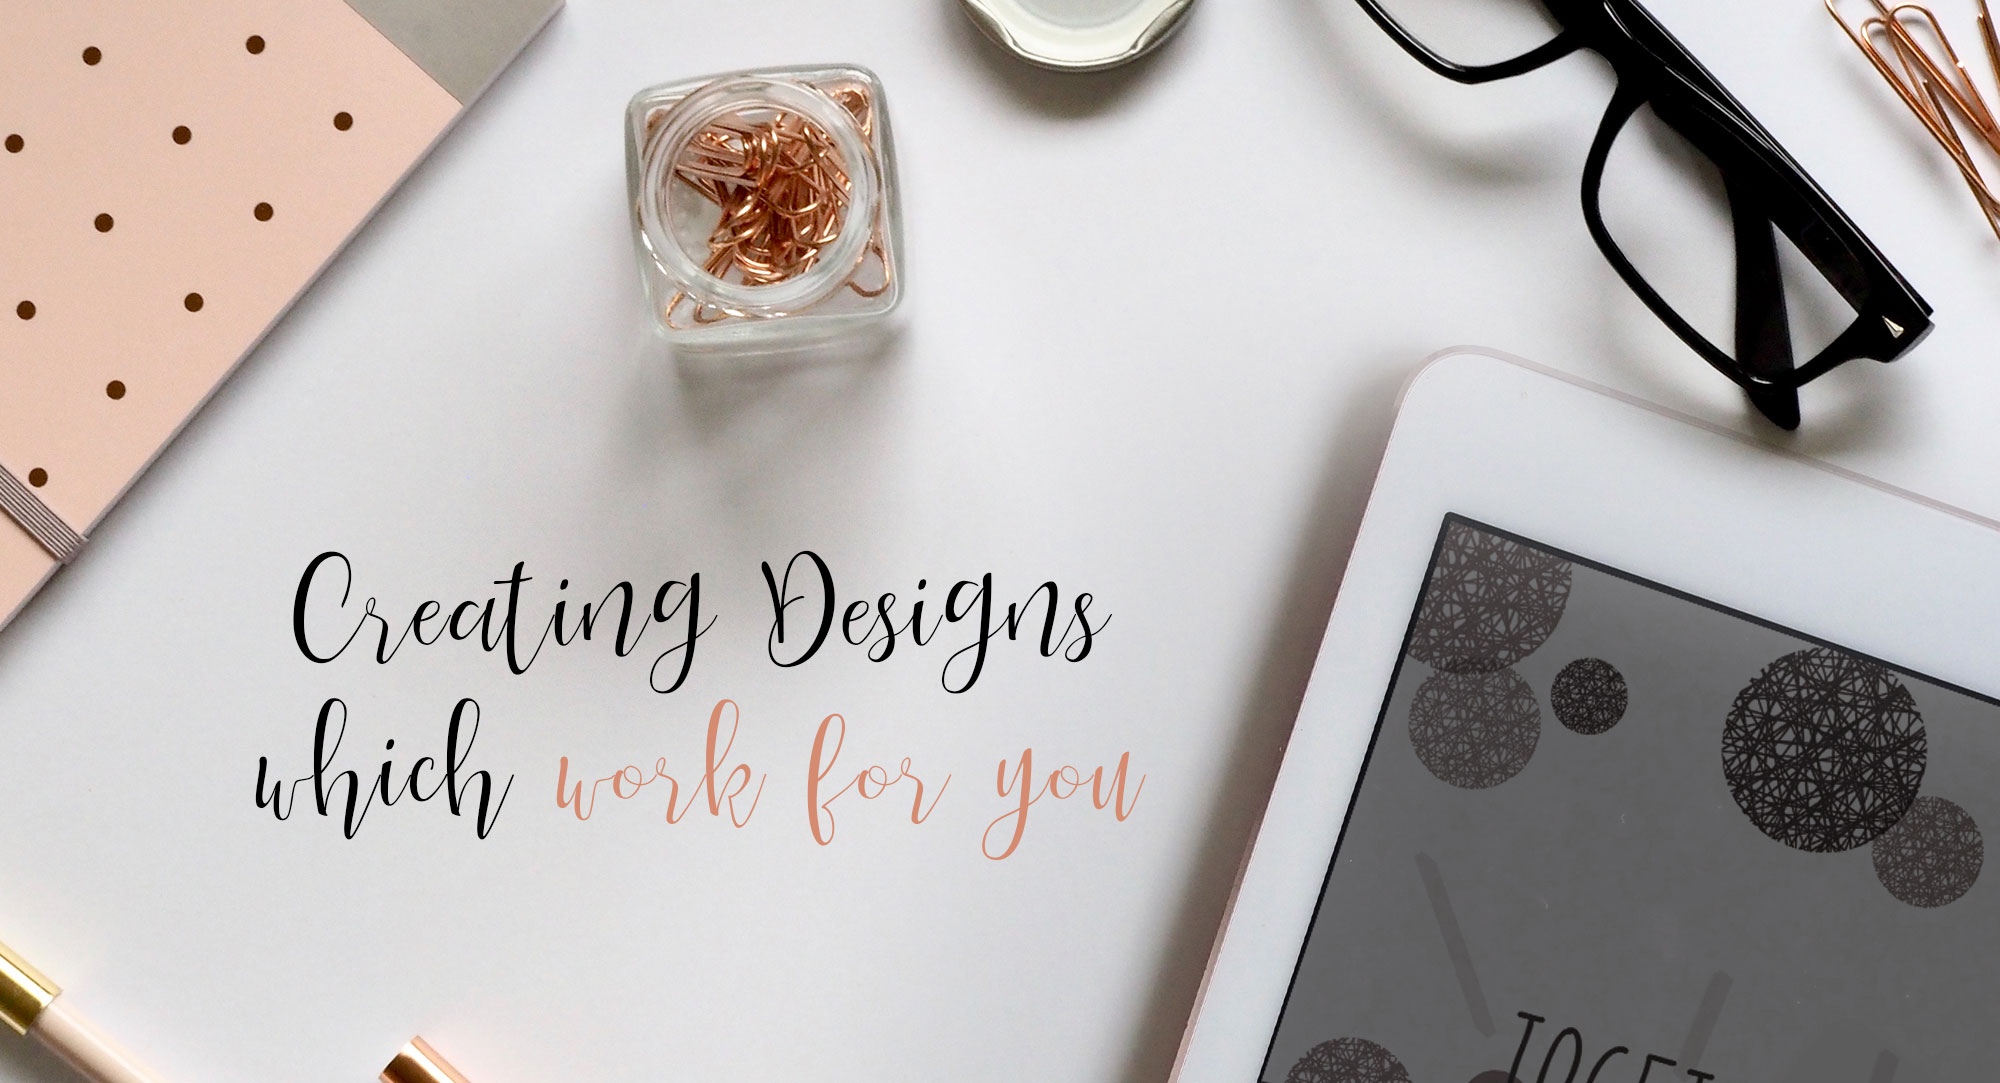 Creating designs which work for you